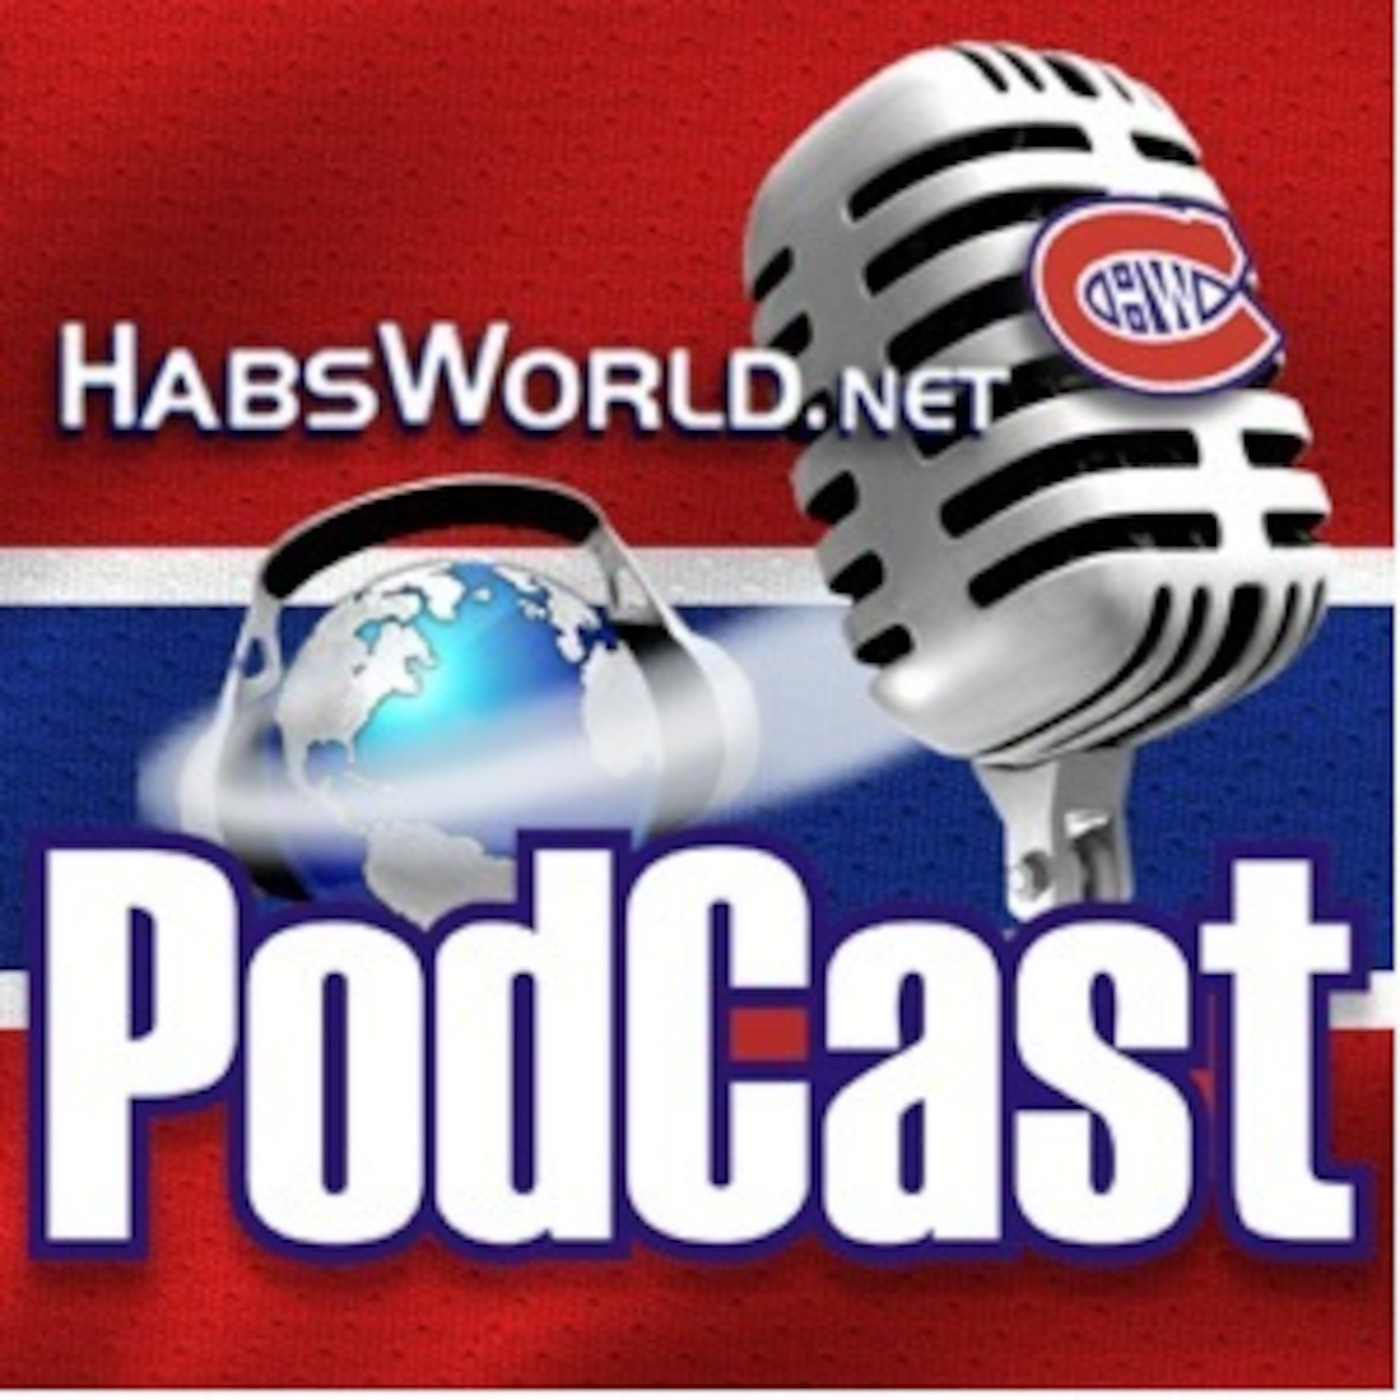 Habsworld's Podcast